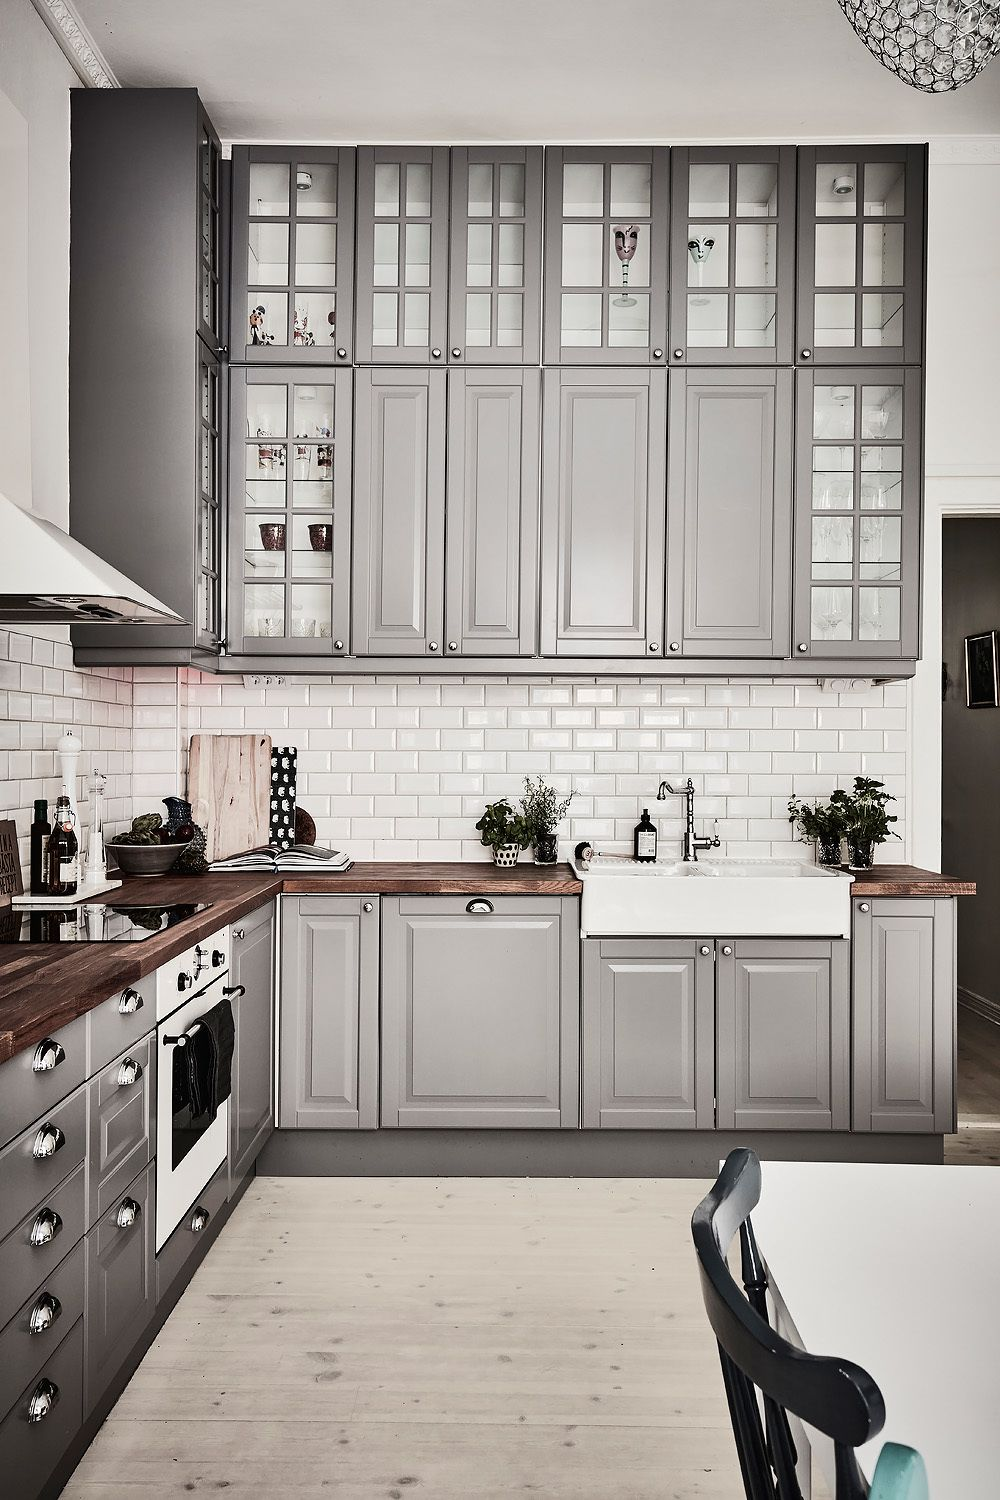 Grey Kitchen Cabinets Commercial Flooring Options Inspiring Kitchens You Won T Believe Are Ikea Decorating Tips Bodbyn Cupboards